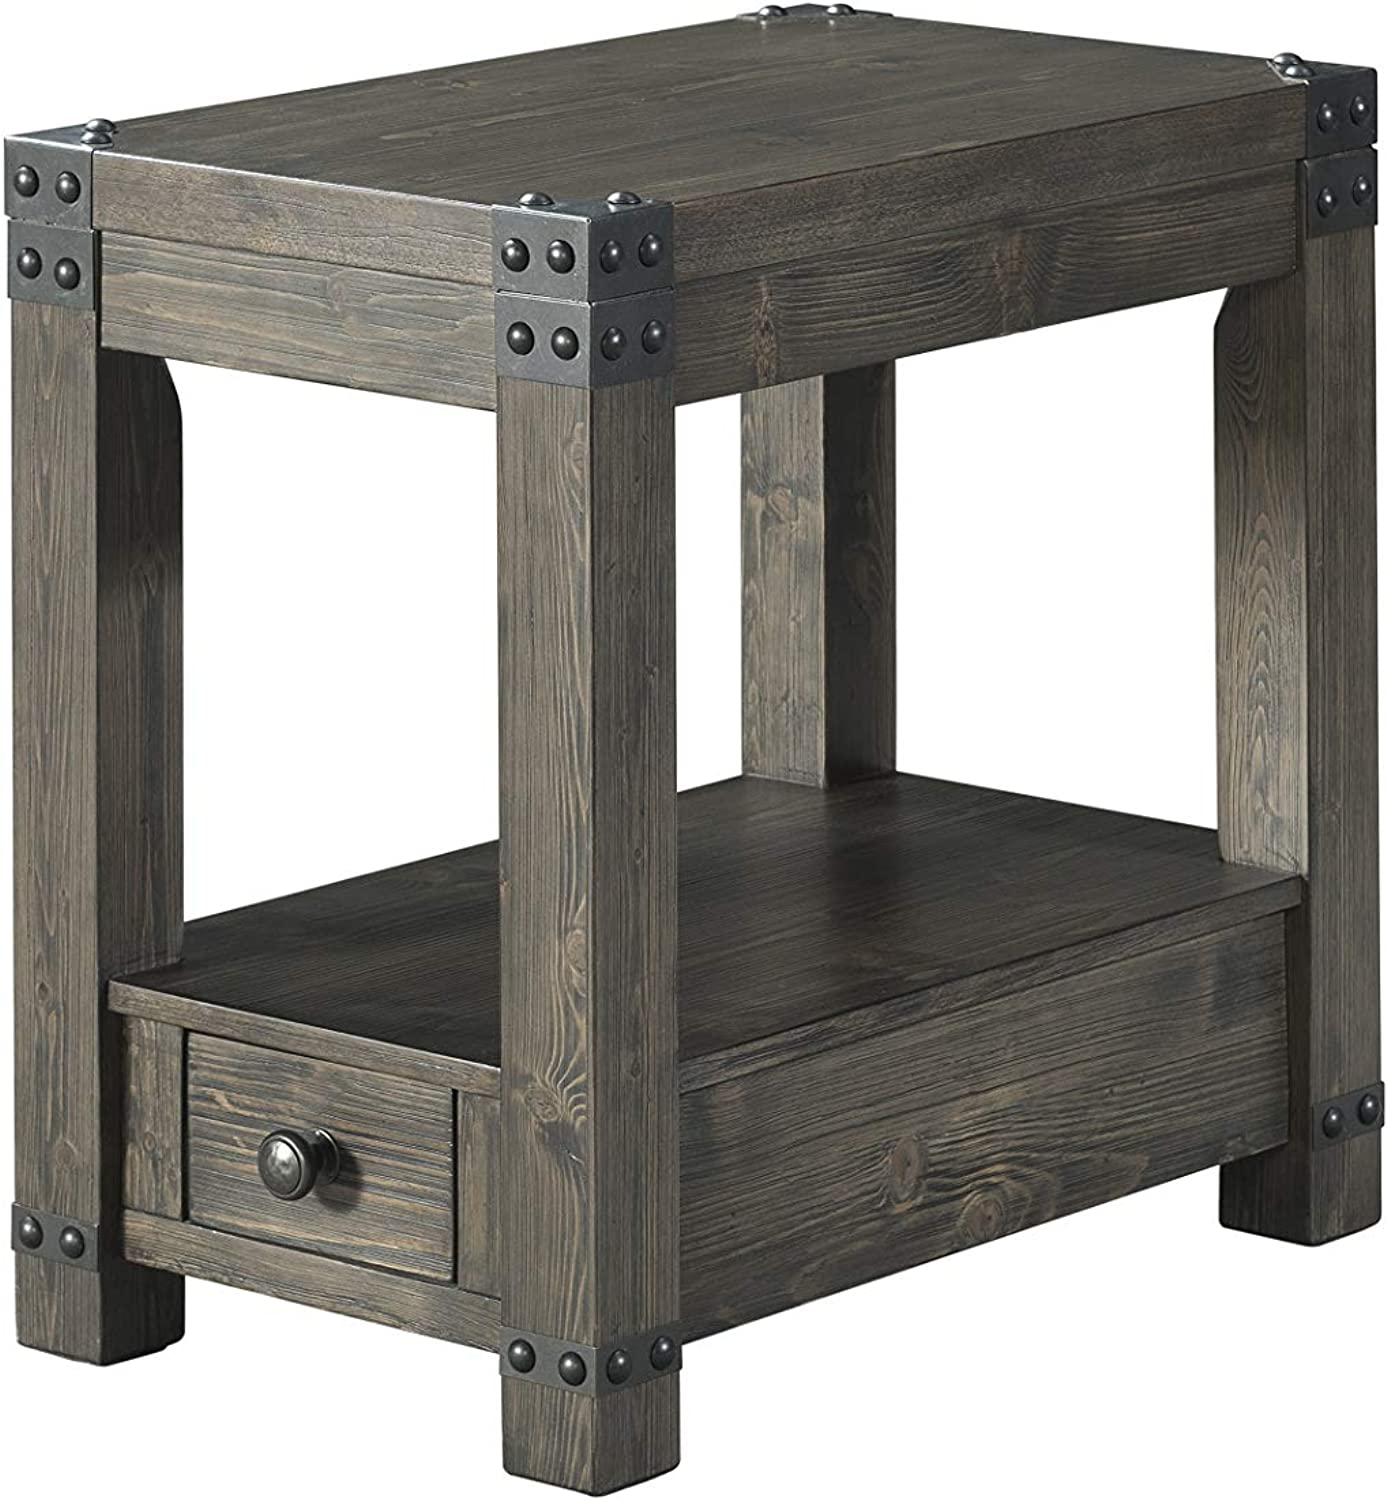 Lane Home Furnishings 7593-41 Chairside Table